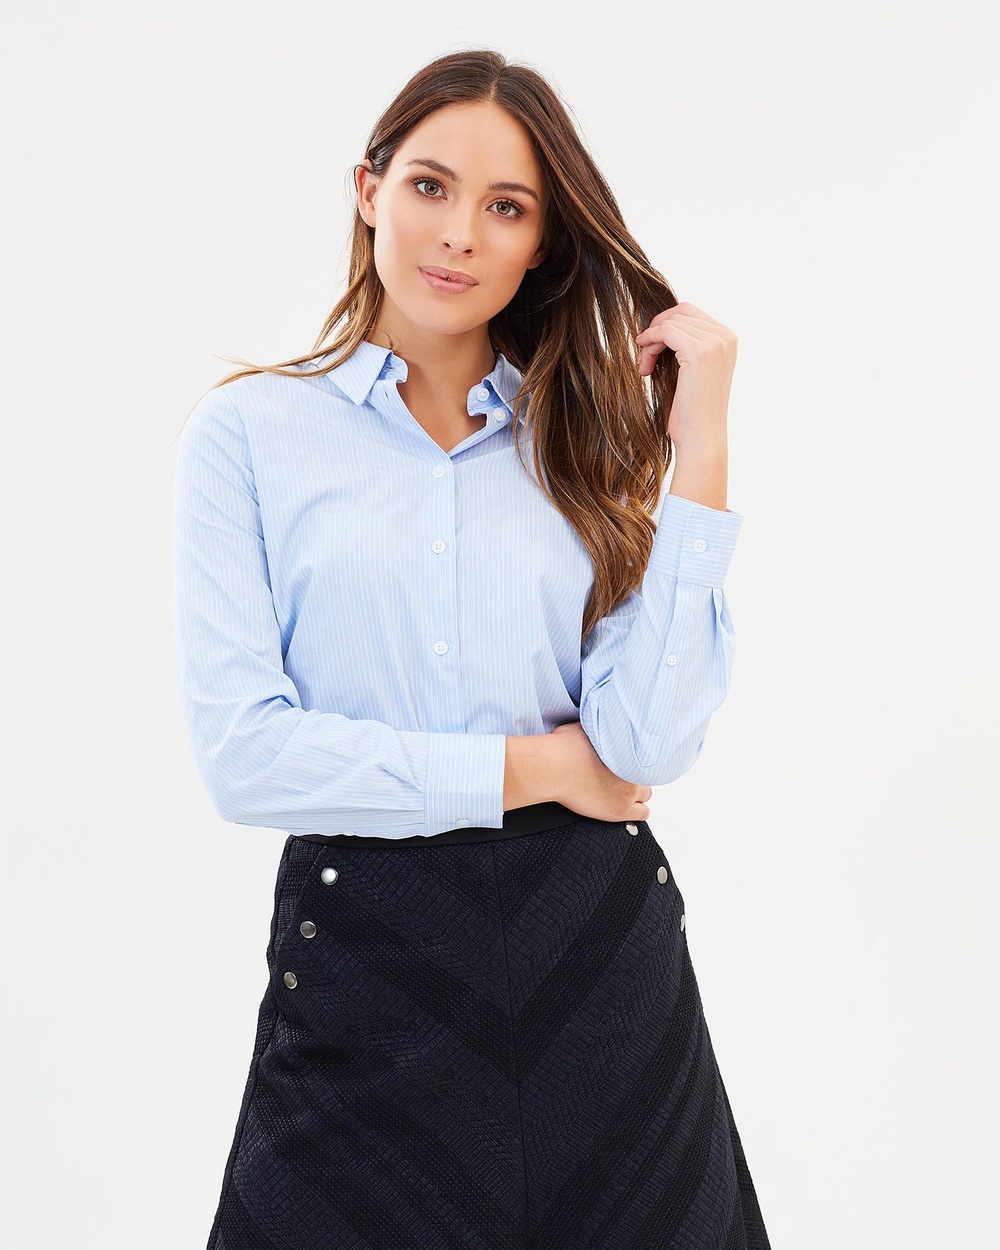 SABA Ivy Semi Fitted Shirt Tops Blue & White Ivy Semi-Fitted Shirt